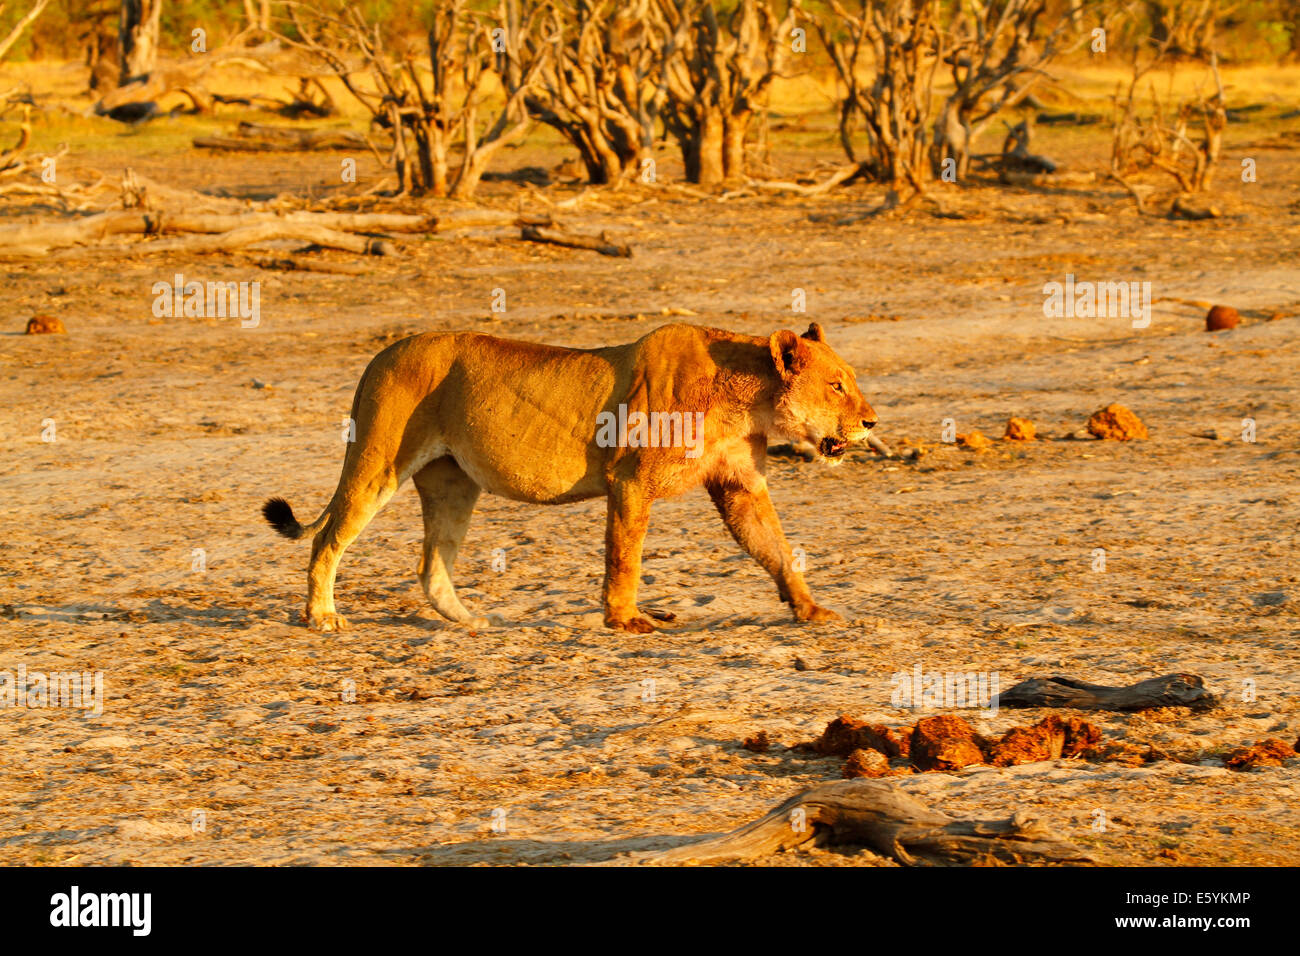 Fat & full lioness strolling across the flats on Africa's plains, stunning golden colors in the early morning Stock Photo